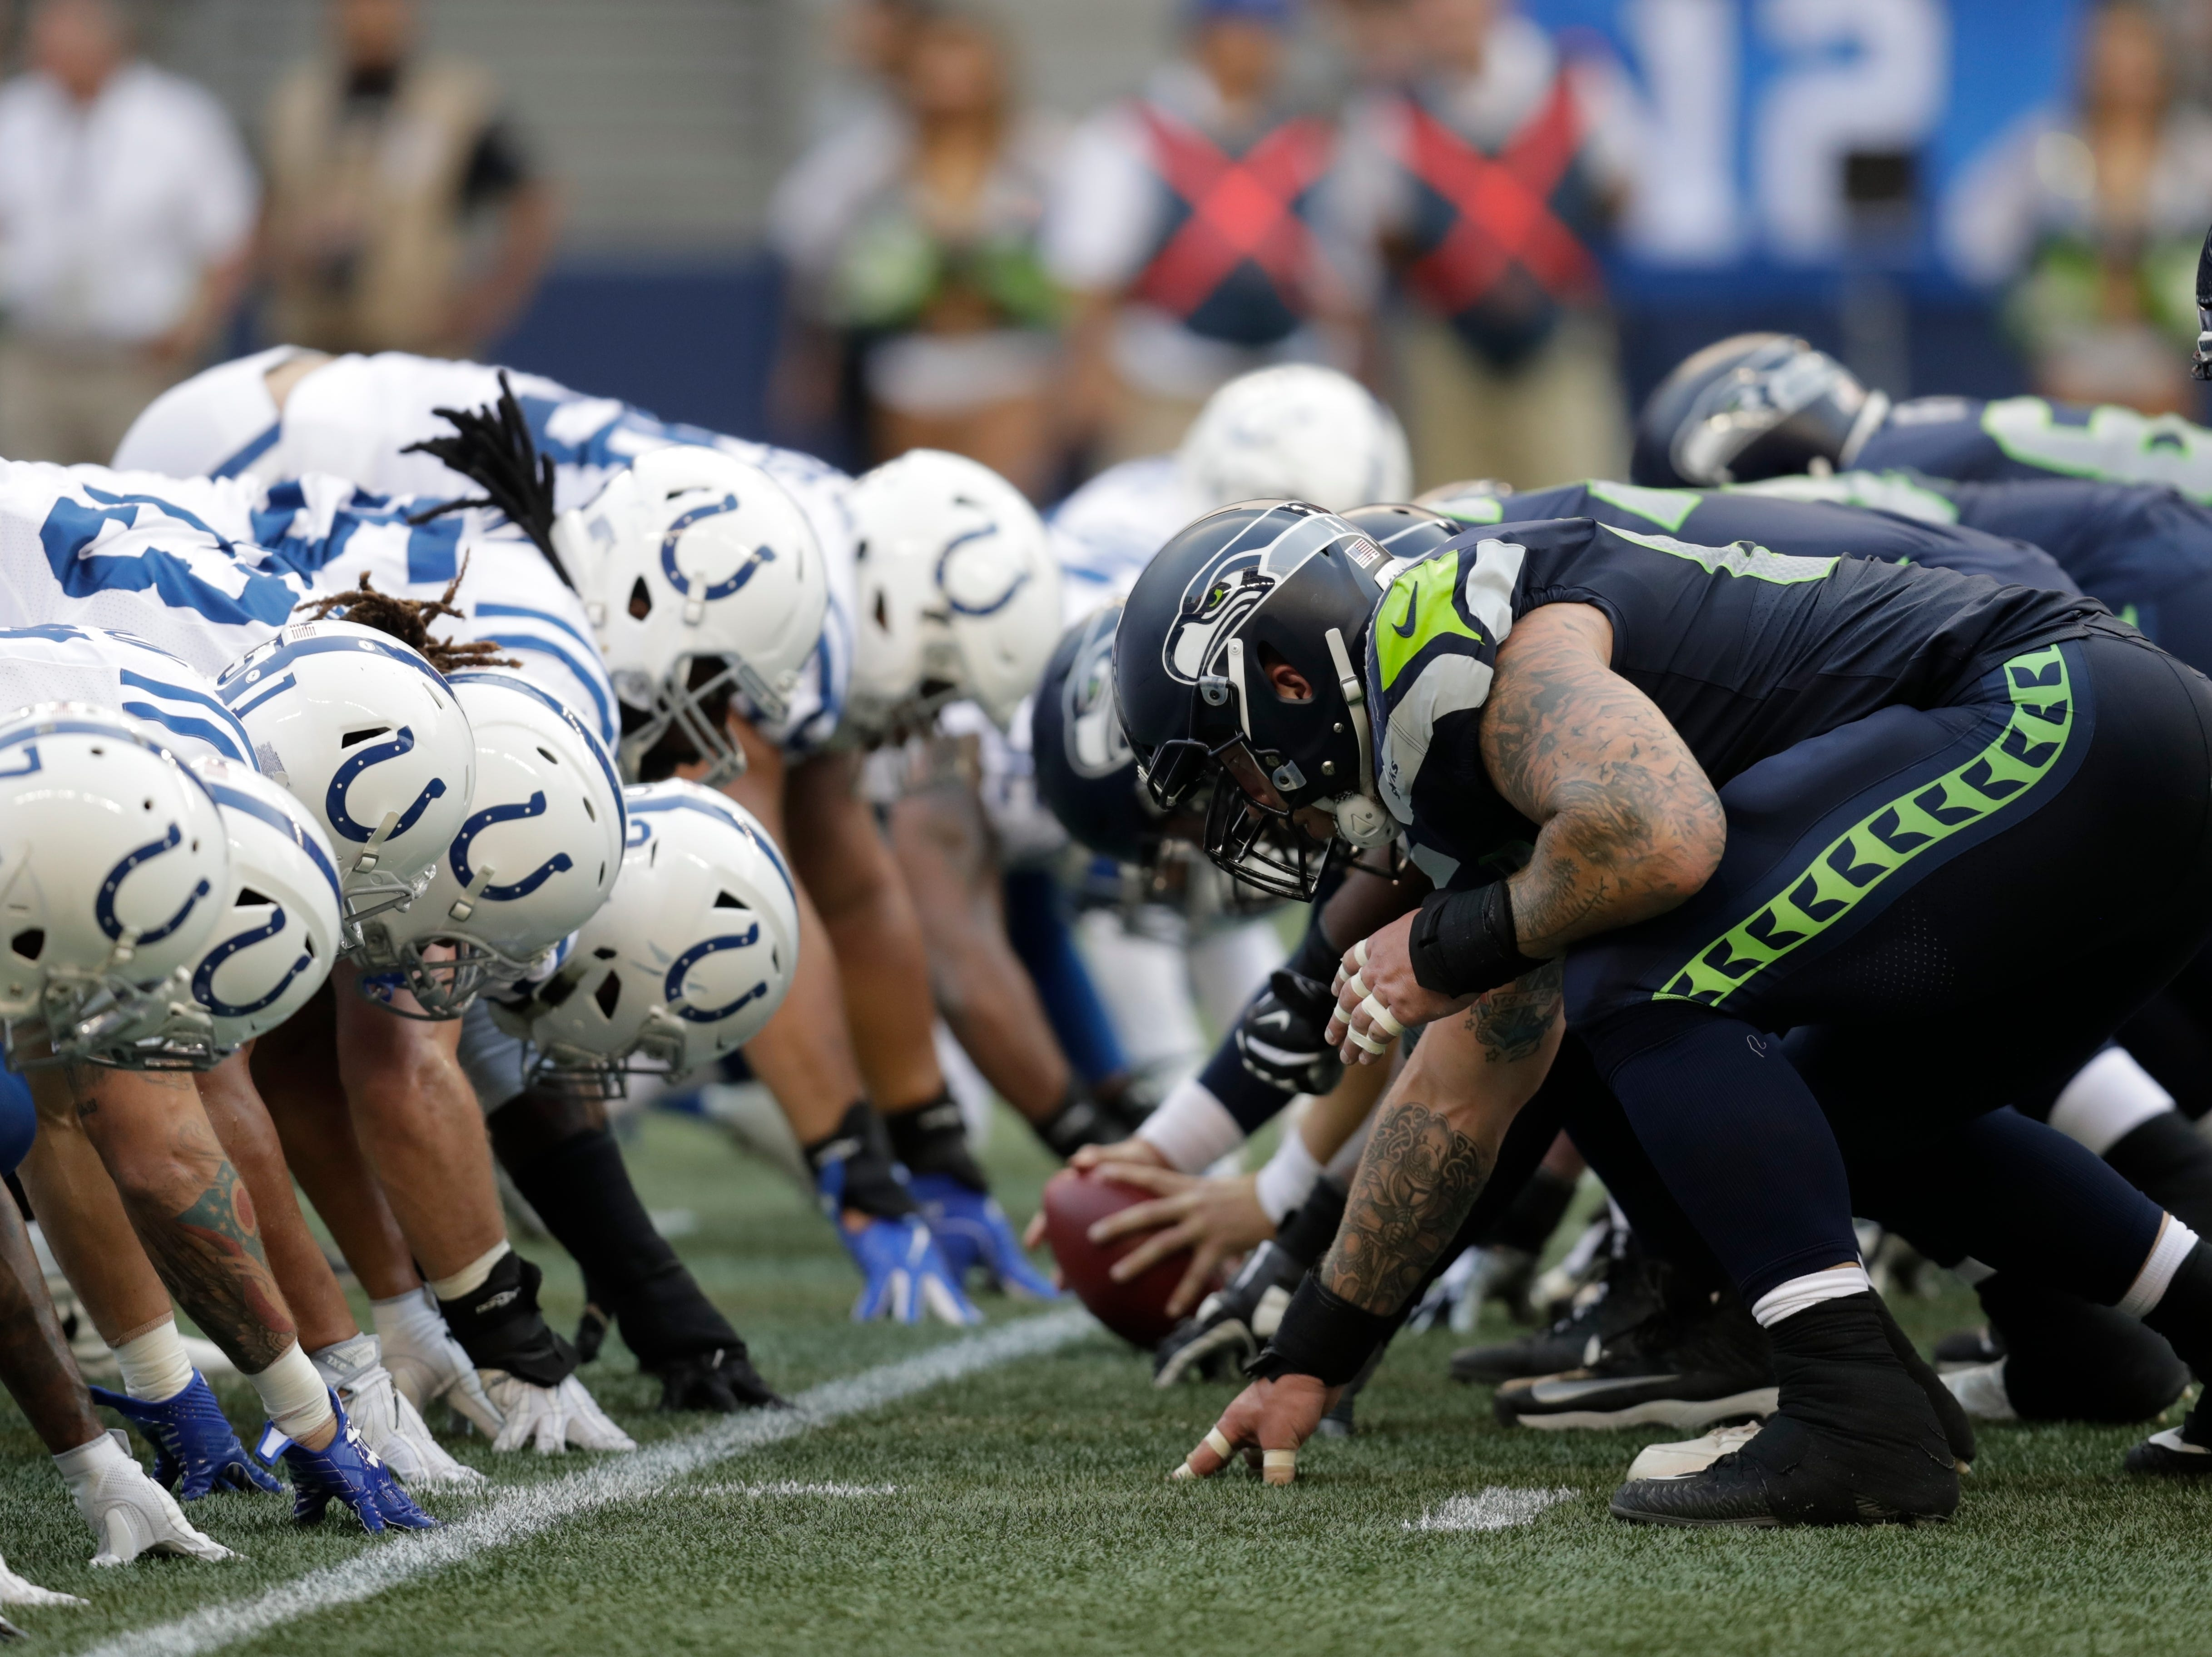 Seattle Seahawks and Indianapolis Colts players line up on the line of scrimmage during the first half of an NFL football preseason game, Thursday, Aug. 9, 2018, in Seattle. (AP Photo/Stephen Brashear)